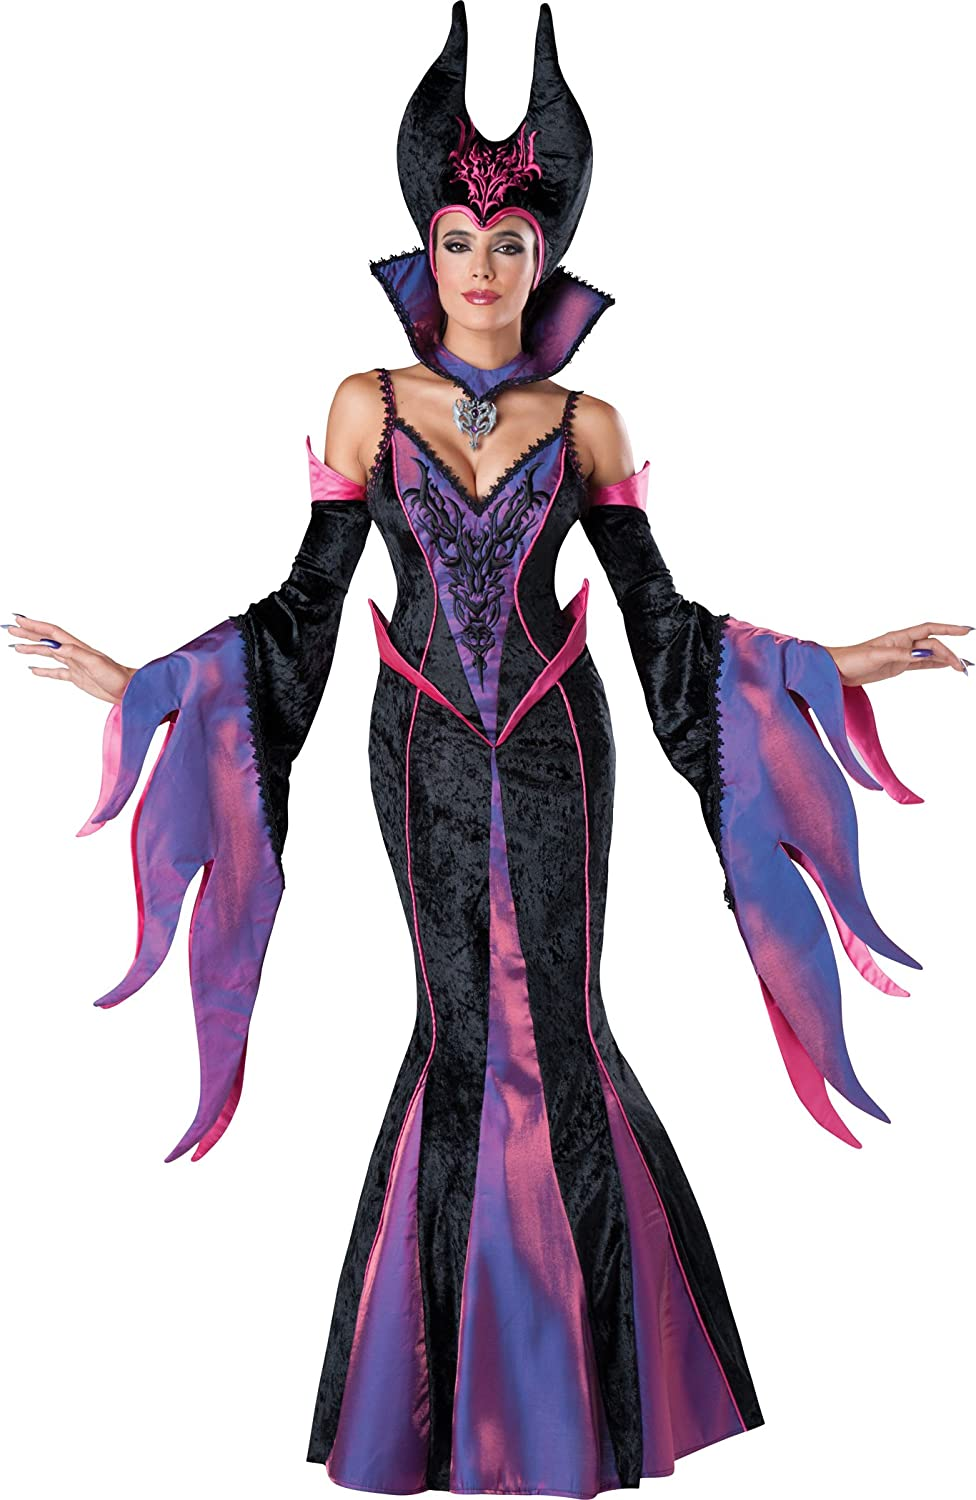 maleficent evil witch sorceress halloween costume dress